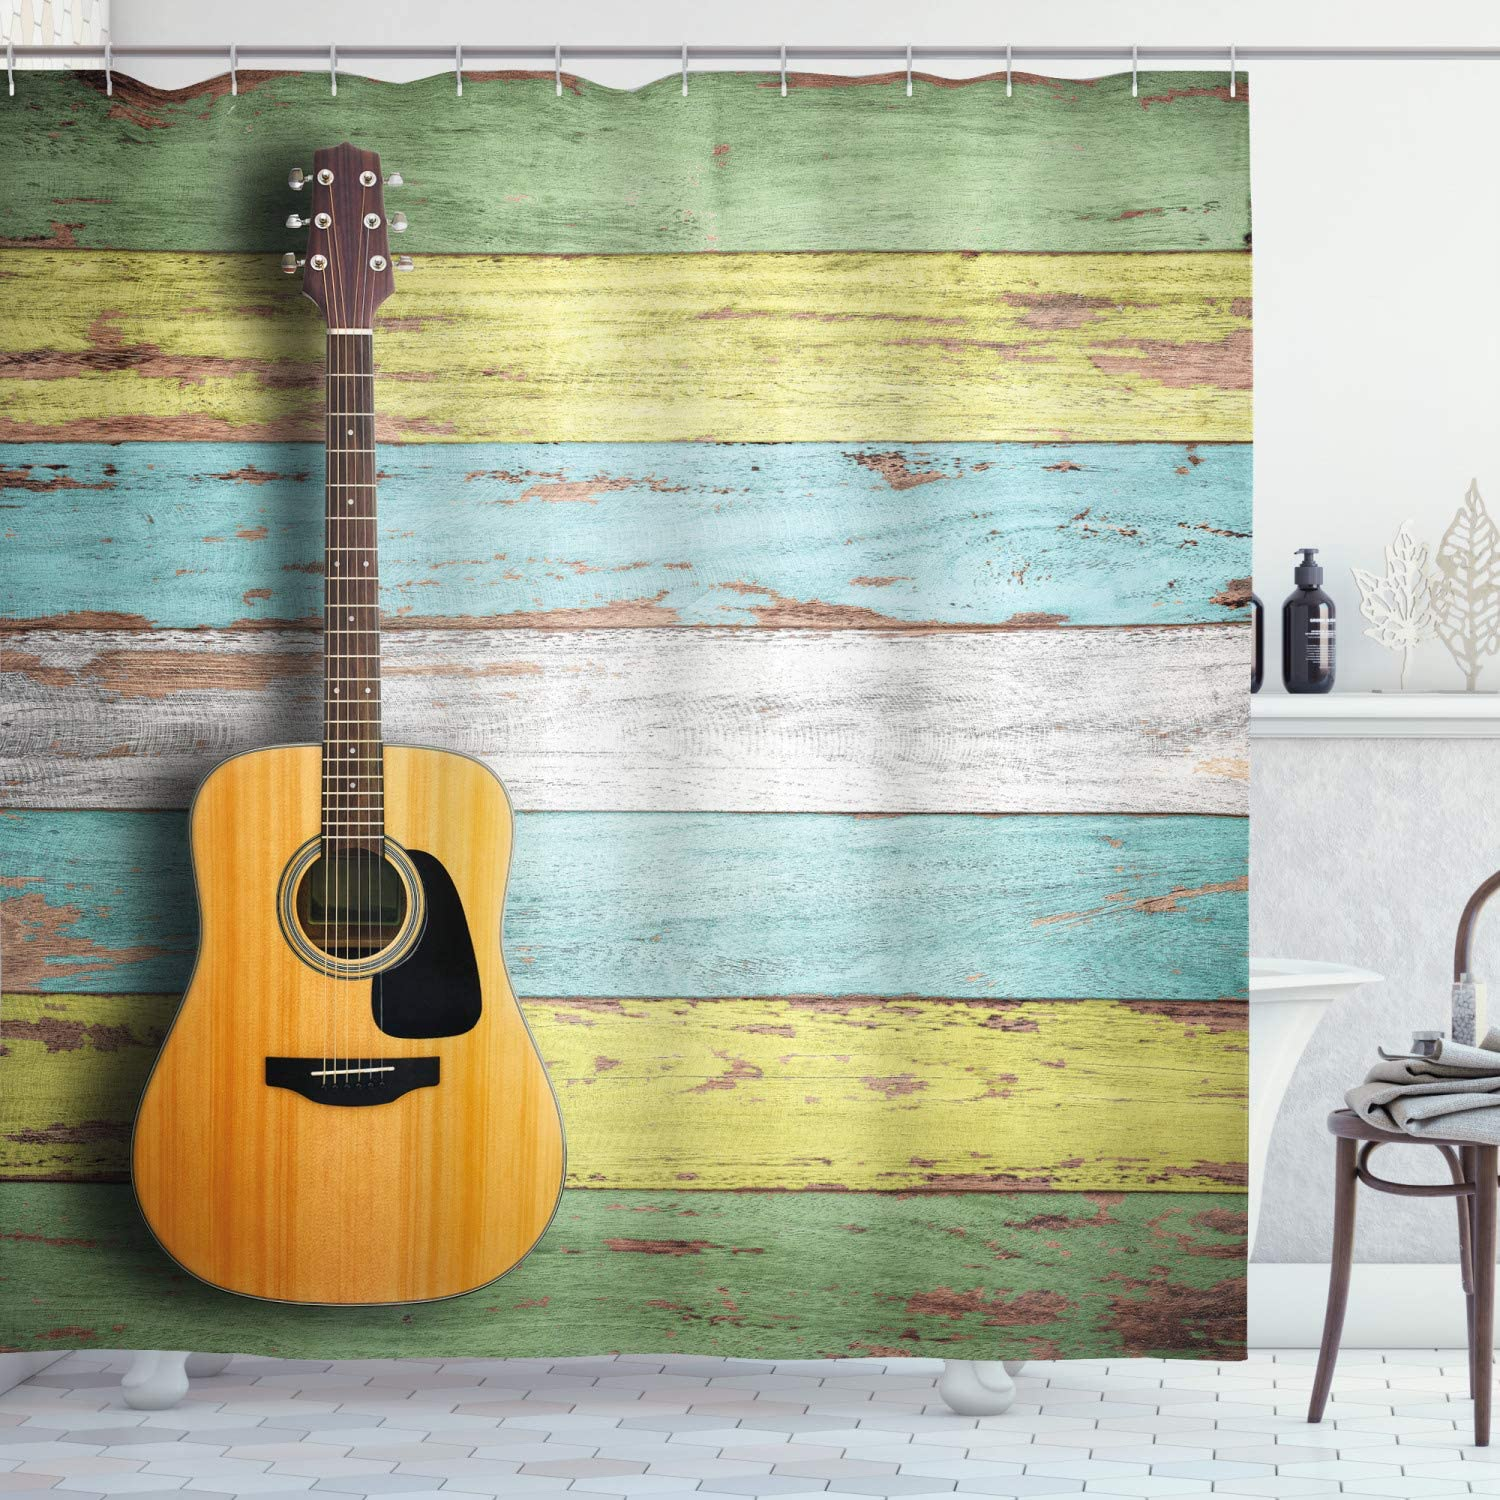 Ambesonne Music Shower Curtain, Acoustic Guitar on Colorful Painted Aged Wooden Planks Rustic Country Design Print, Cloth Fabric Bathroom Decor Set with Hooks, 75